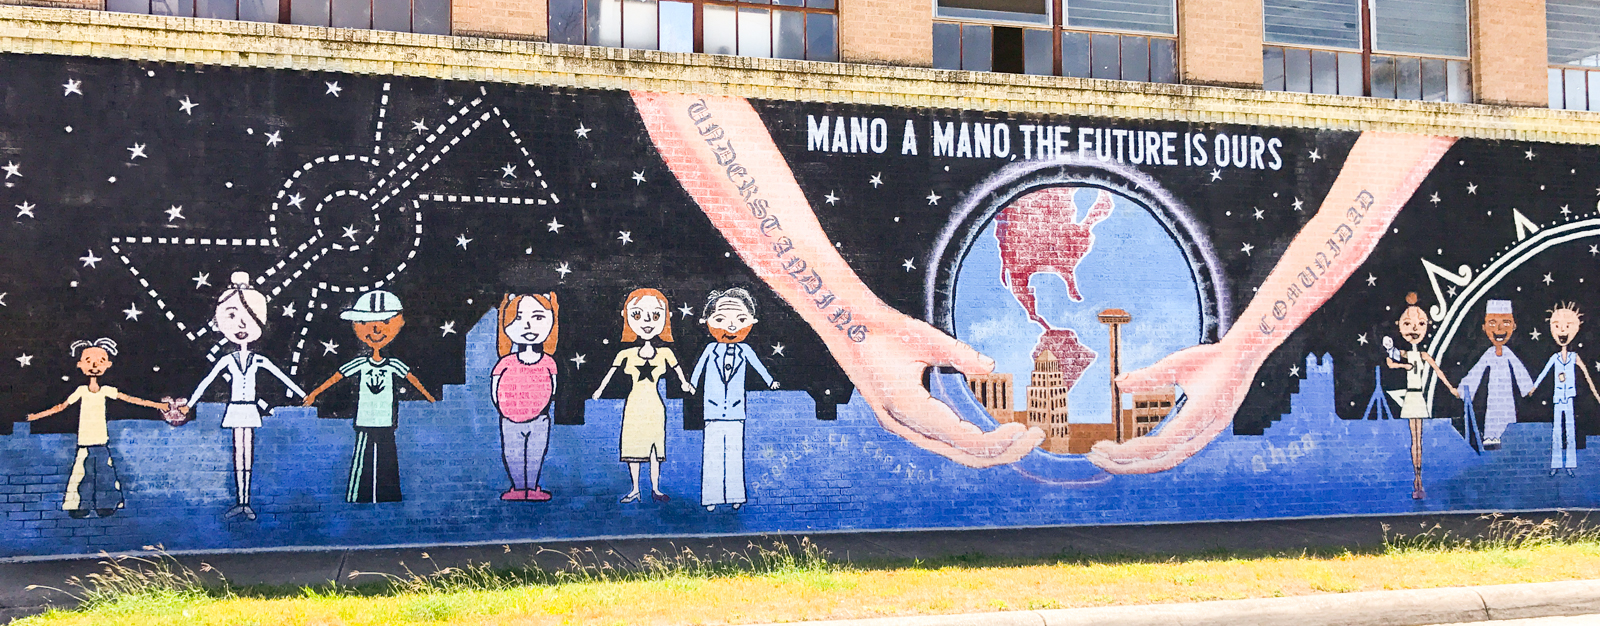 mano a mano the future is ours